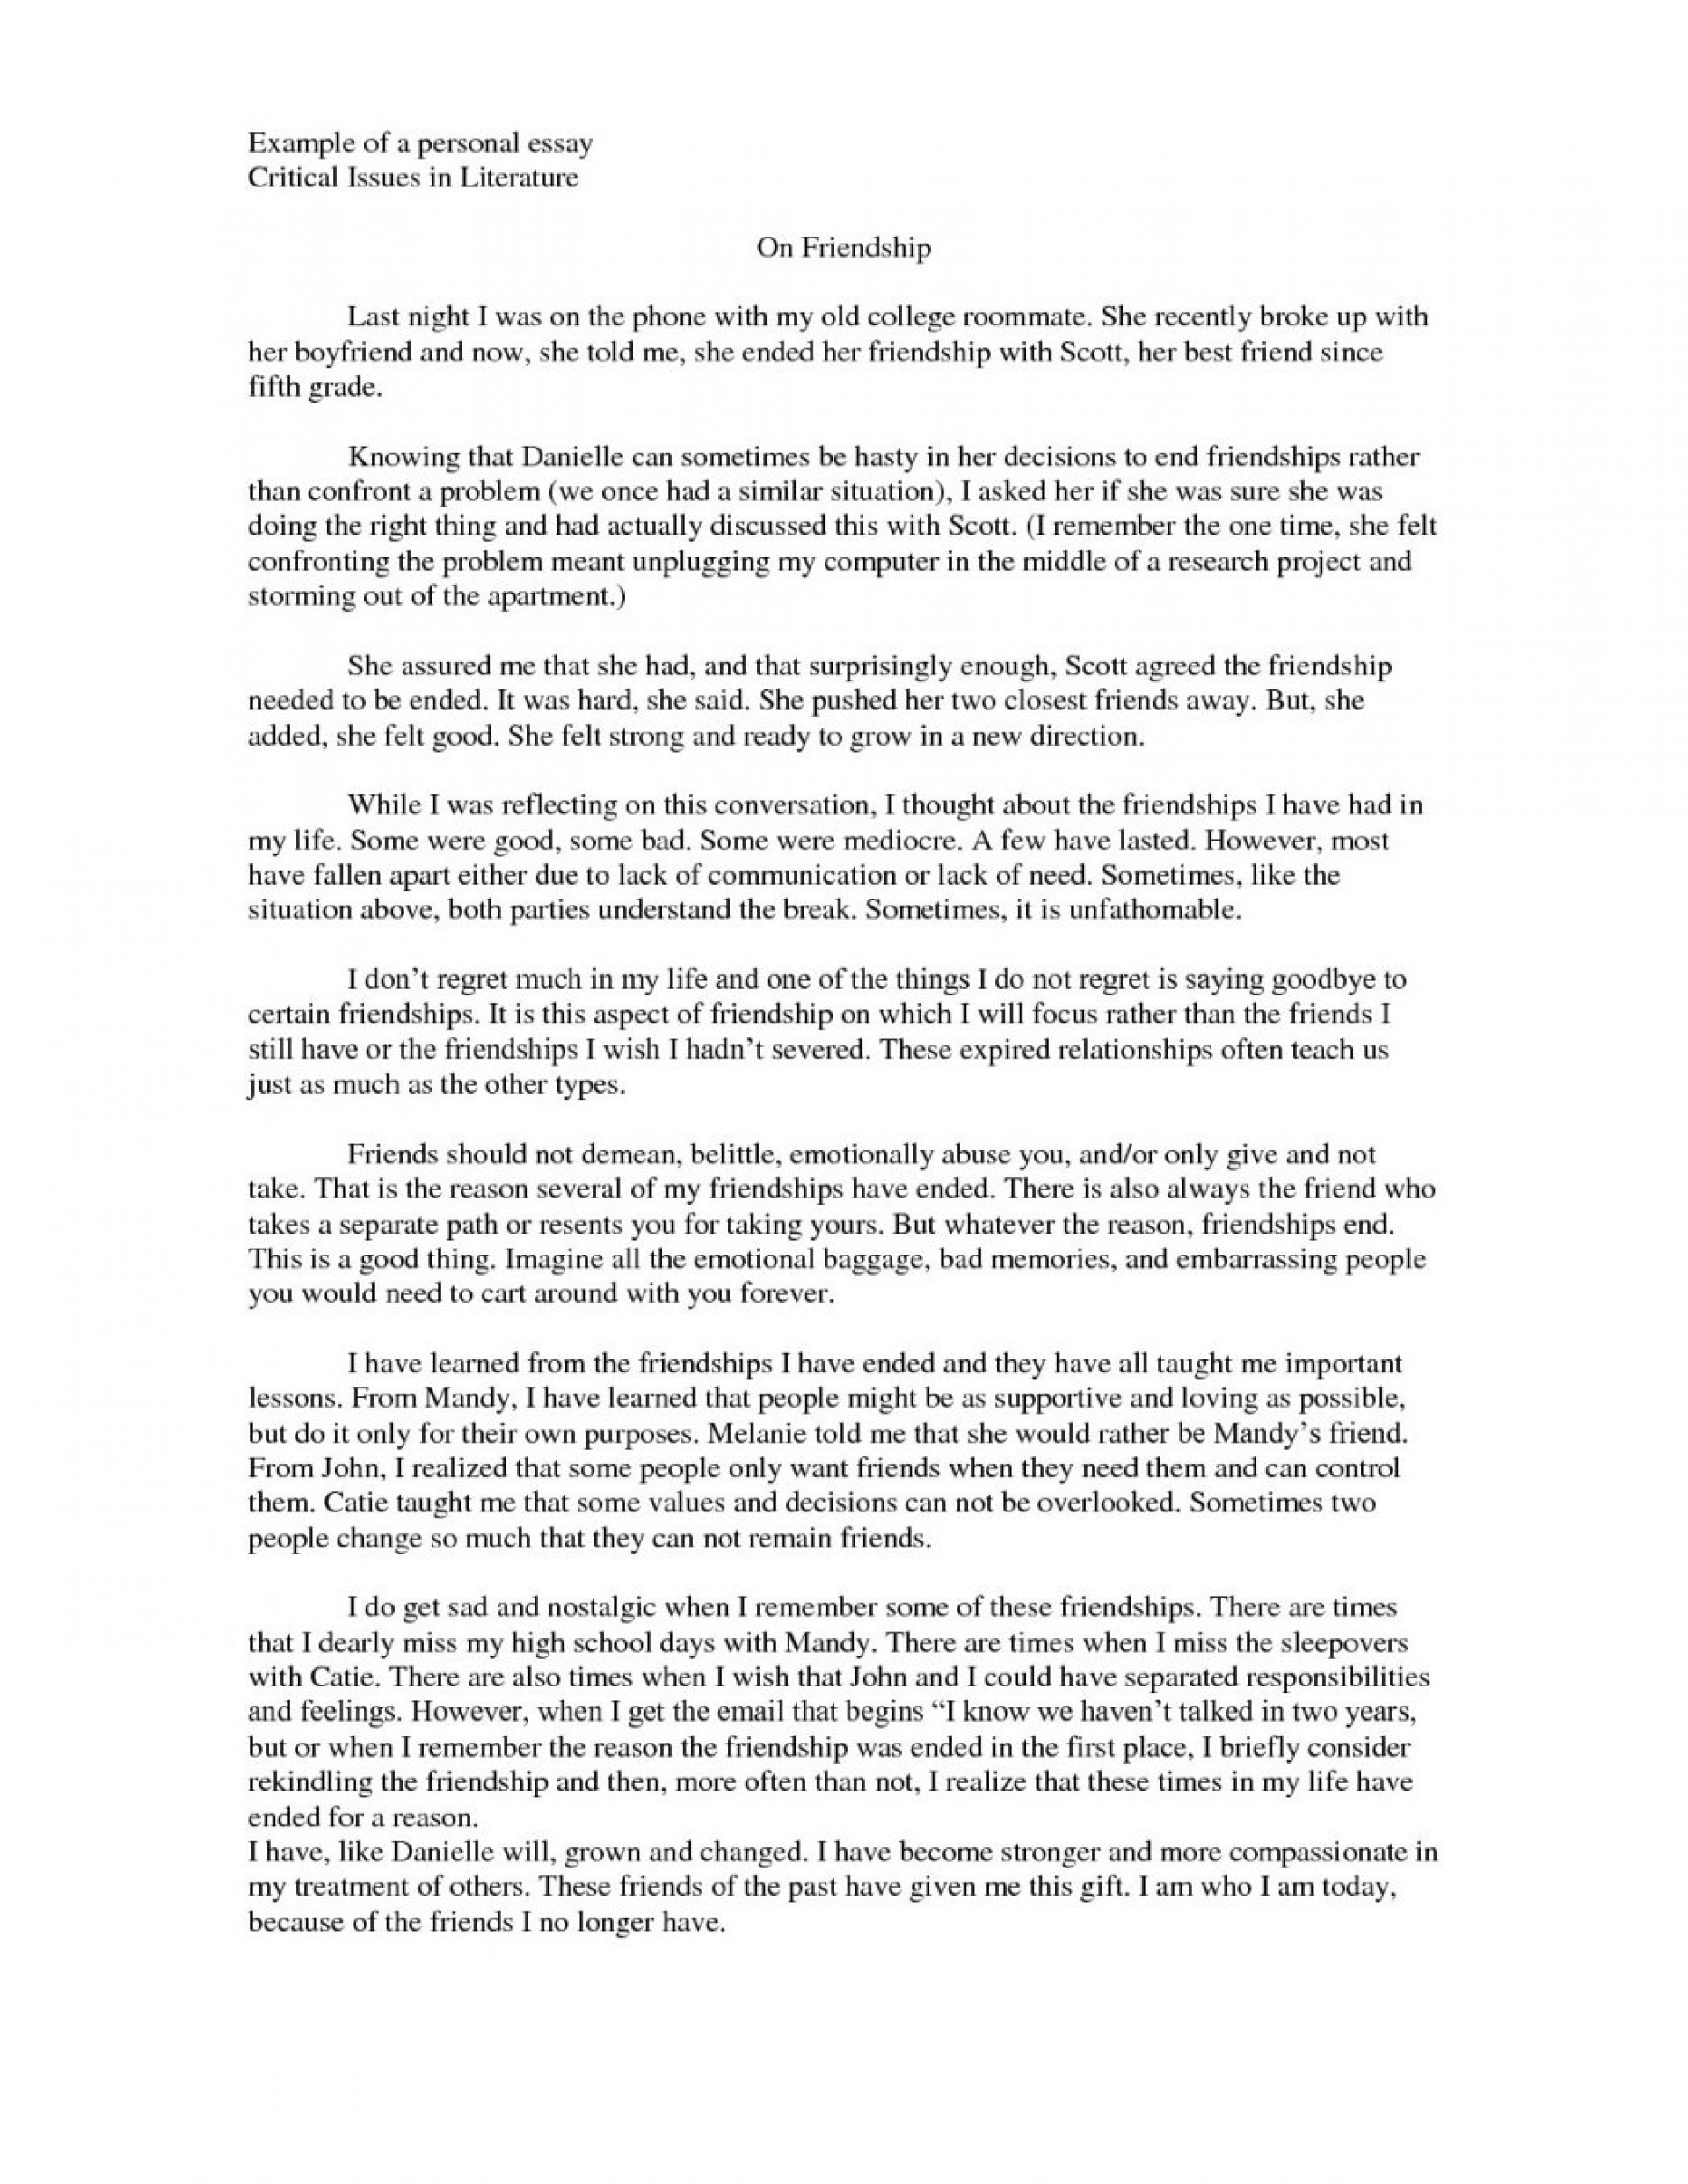 021 Philosophy Of Nursingay Religionays Self And Other In Argumentative On Career Sample Opening Statement Template Qz9 Shortage Persuasive Homes 1048x1356 Example Fantastic Nursing Essay College 1920